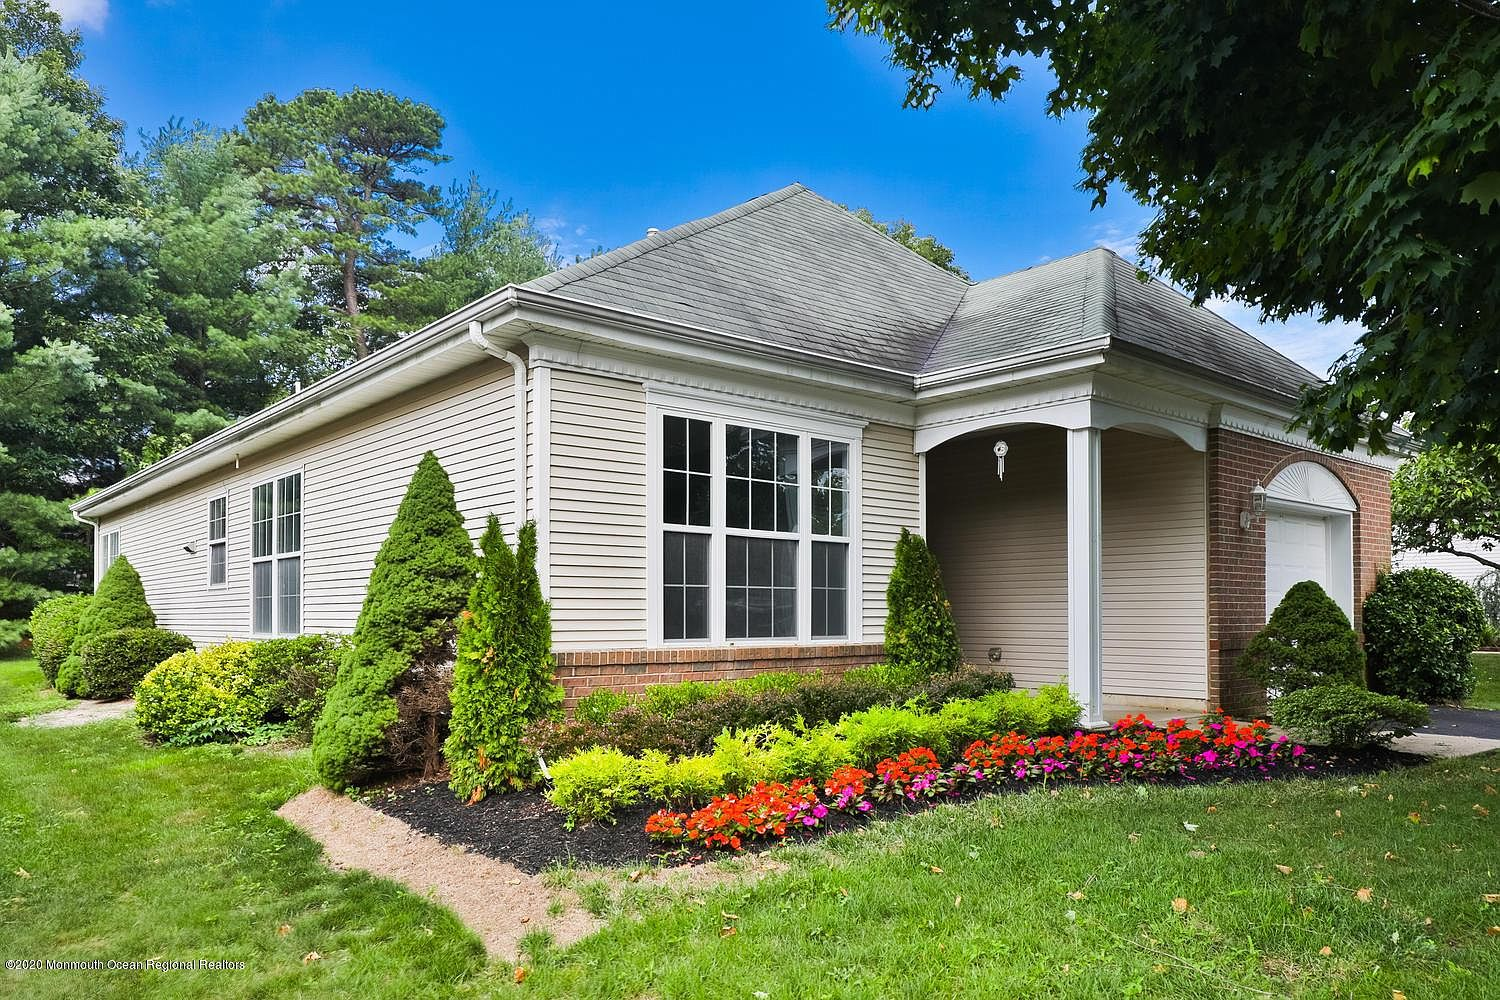 4 Spring Valley Dr Lakewood Nj 08701 Zillow